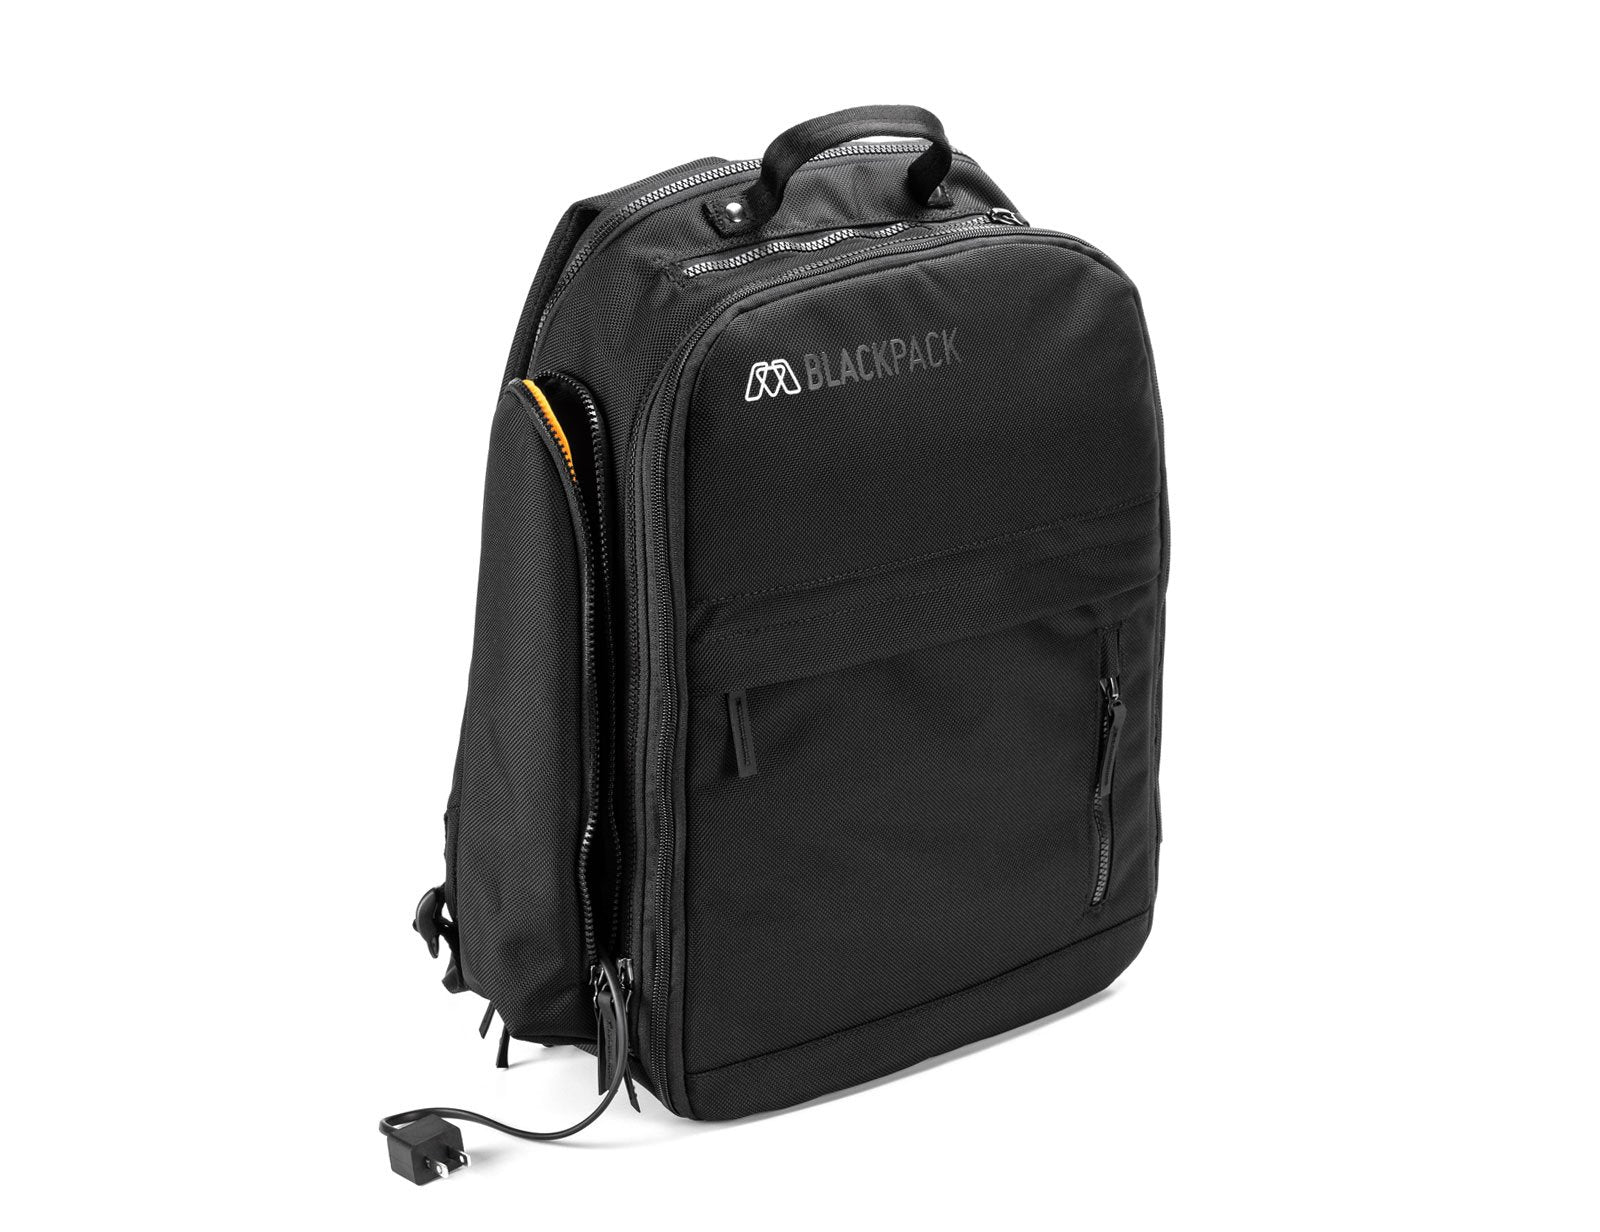 MOS BLACKPACK, Tech Backpack - The best backpack we make! MOS NONE SW-42850